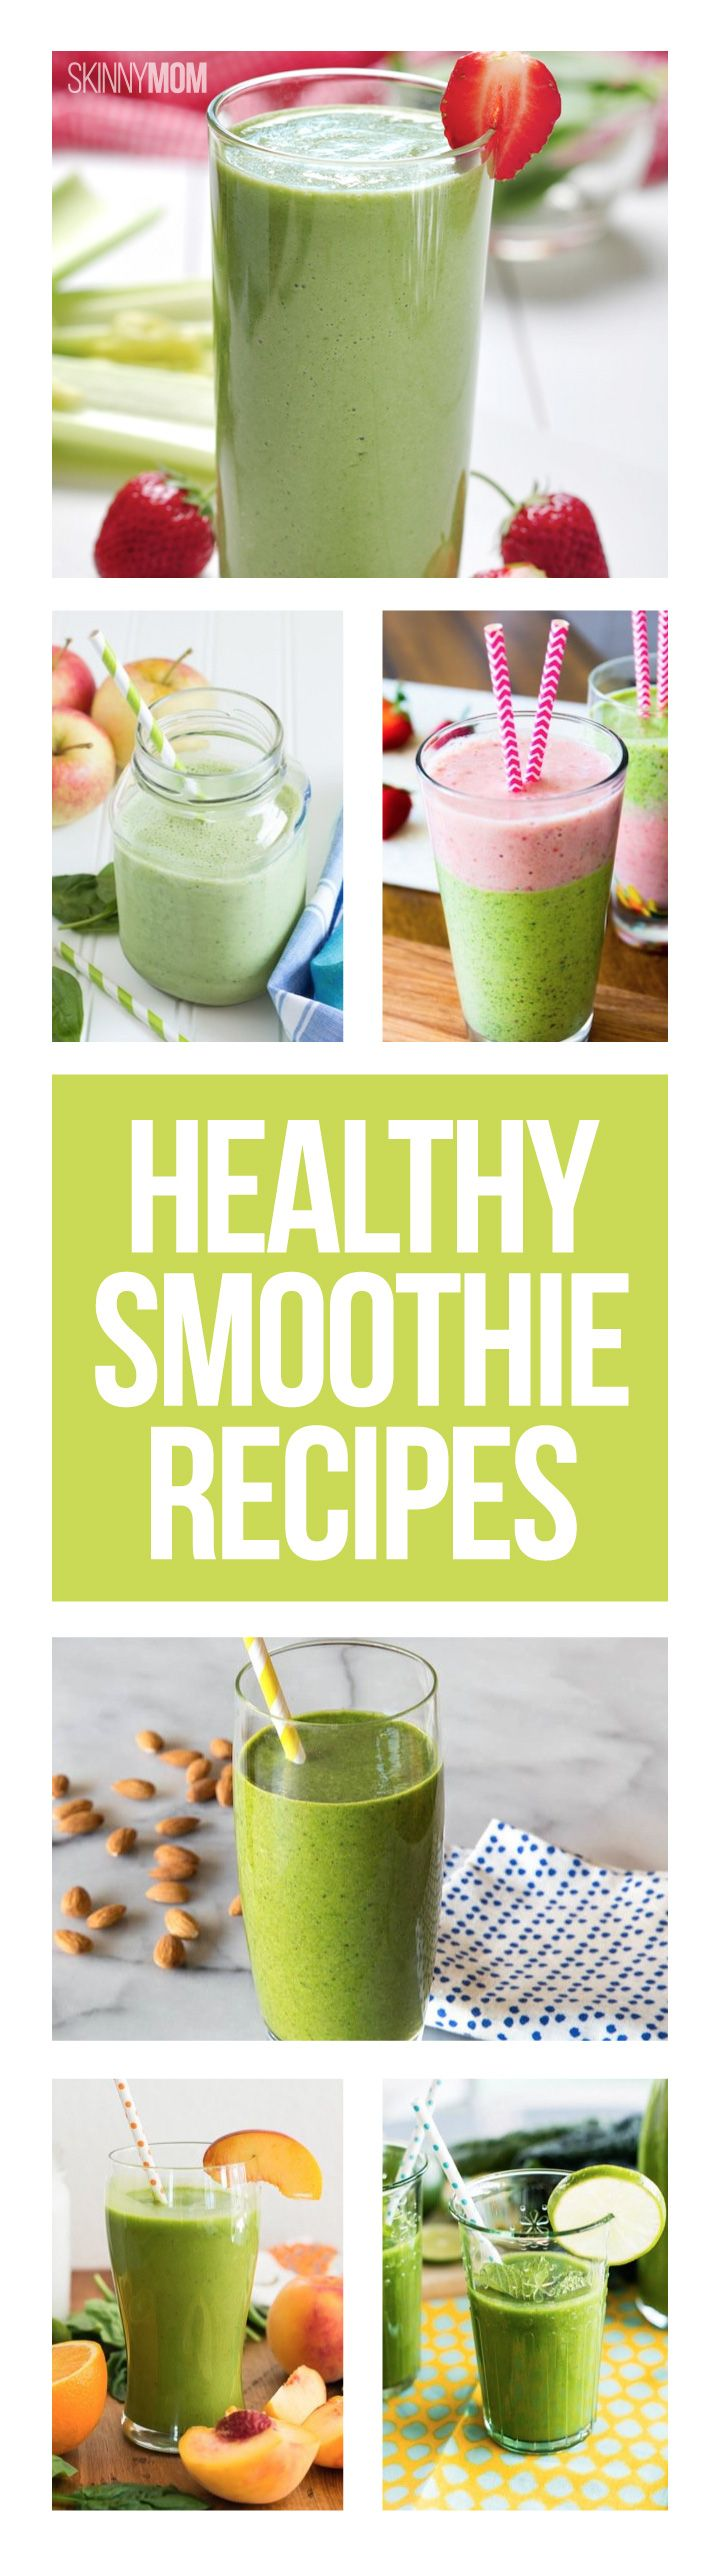 You won't believe how tasty these green smoothies are!